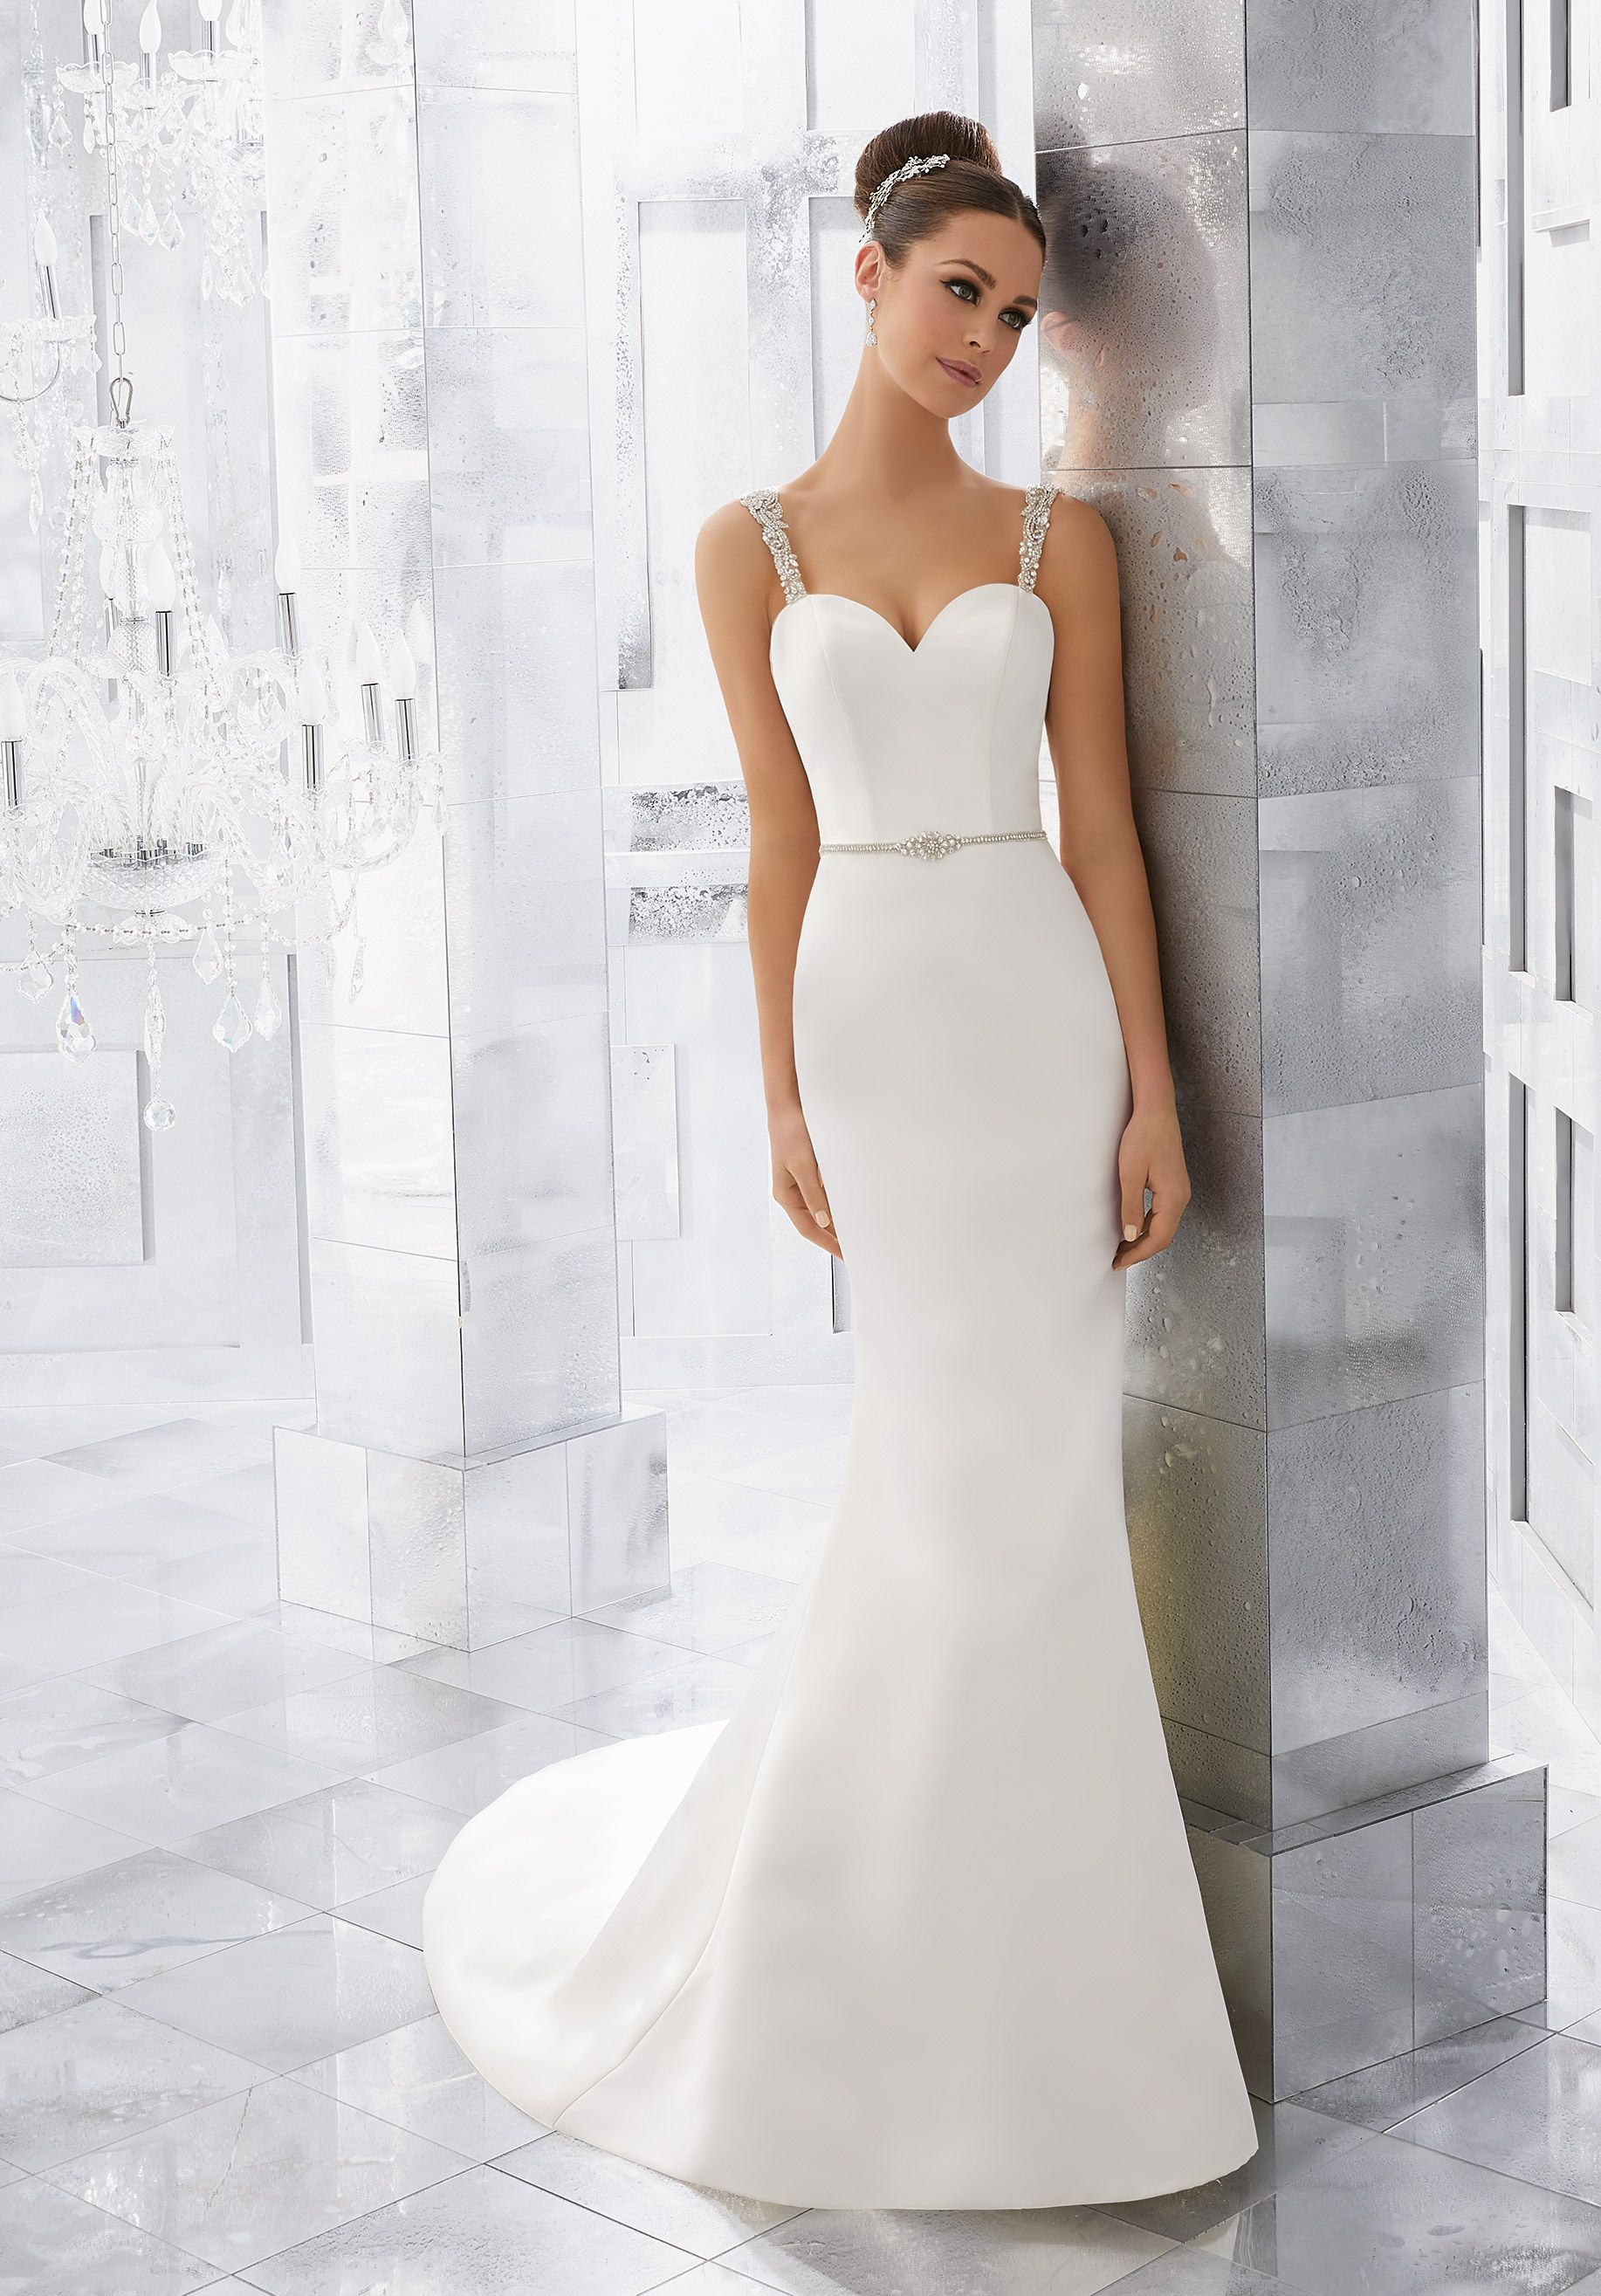 Simple and Understated, This Duchess Satin Wedding Dress is ...